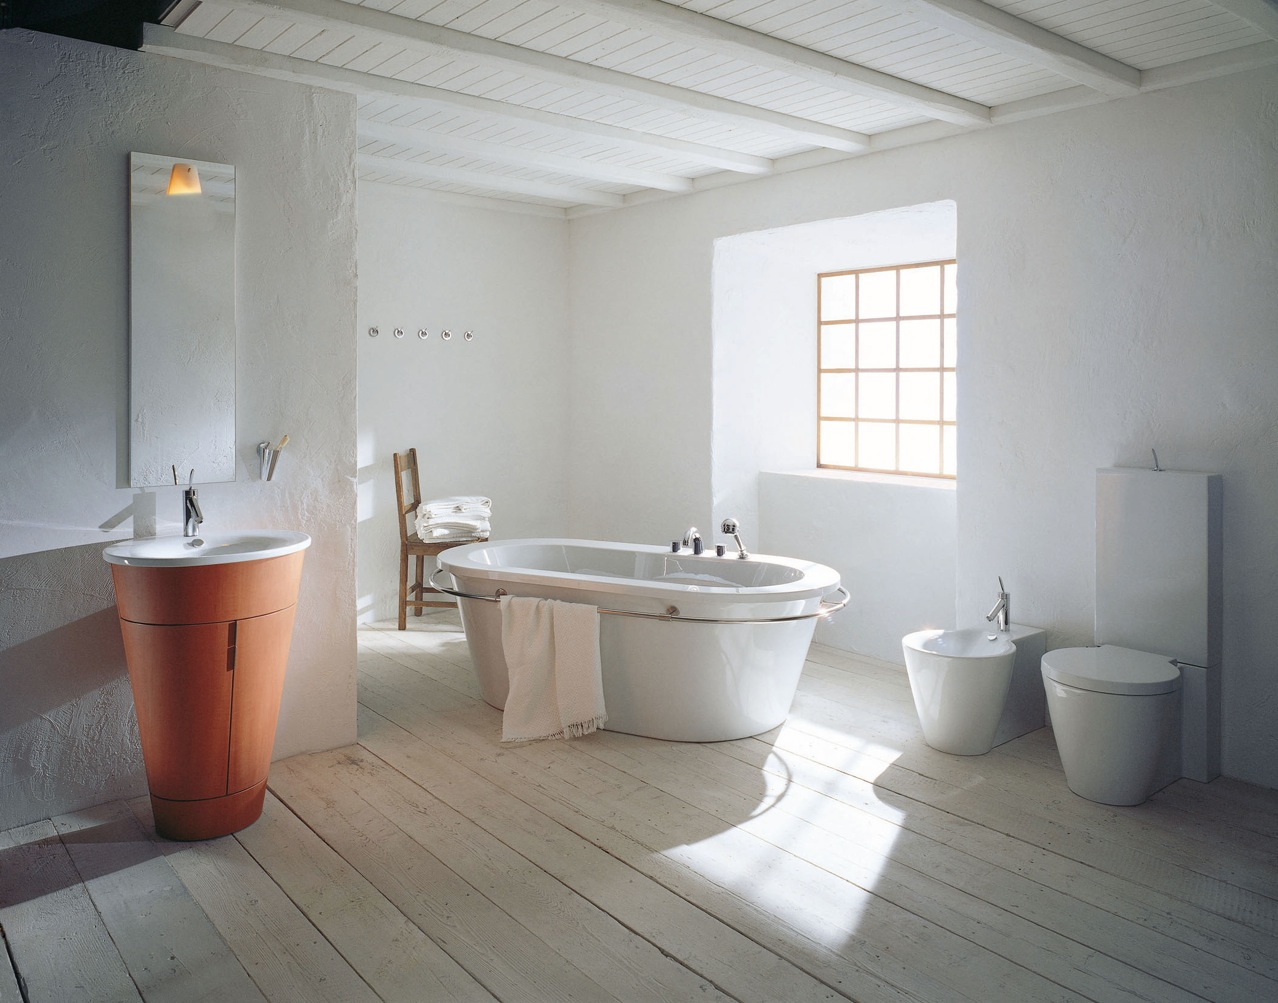 Philipe starck rustic modern bathroom decor for Sophisticated bathroom design